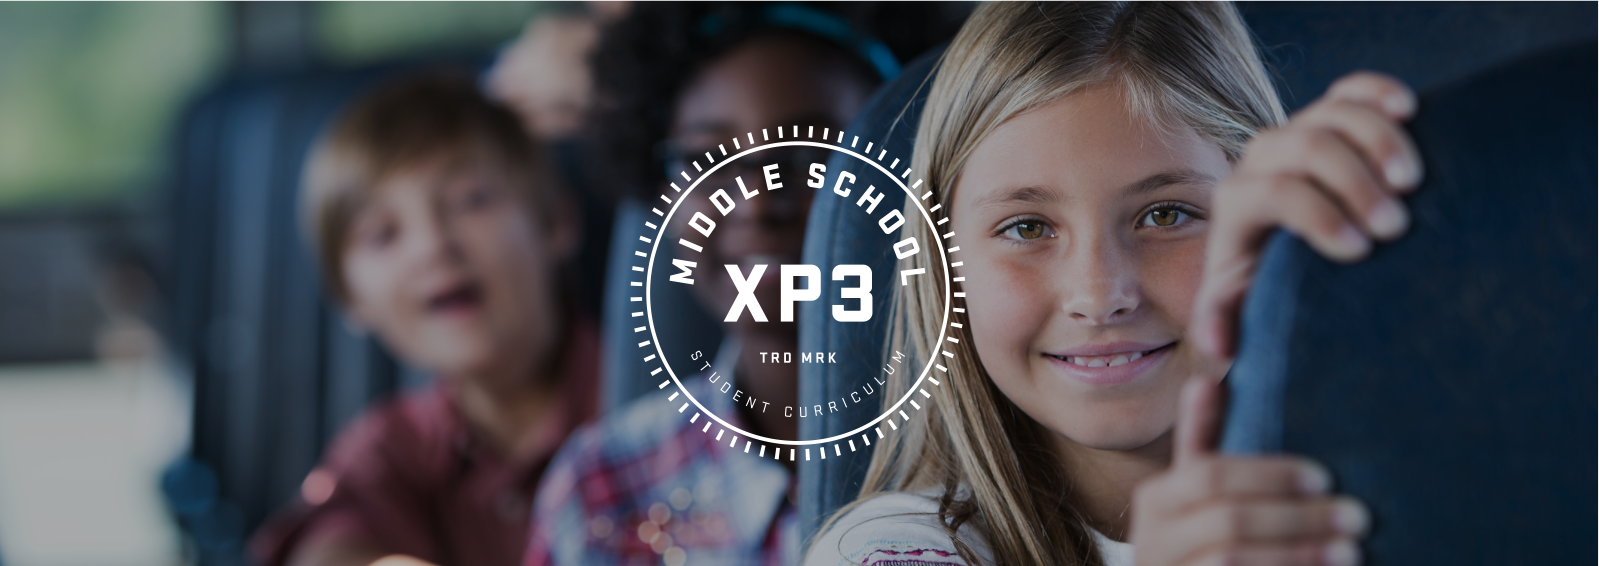 XP3 Middle School Curriculum logo, with children on a school bus in the background